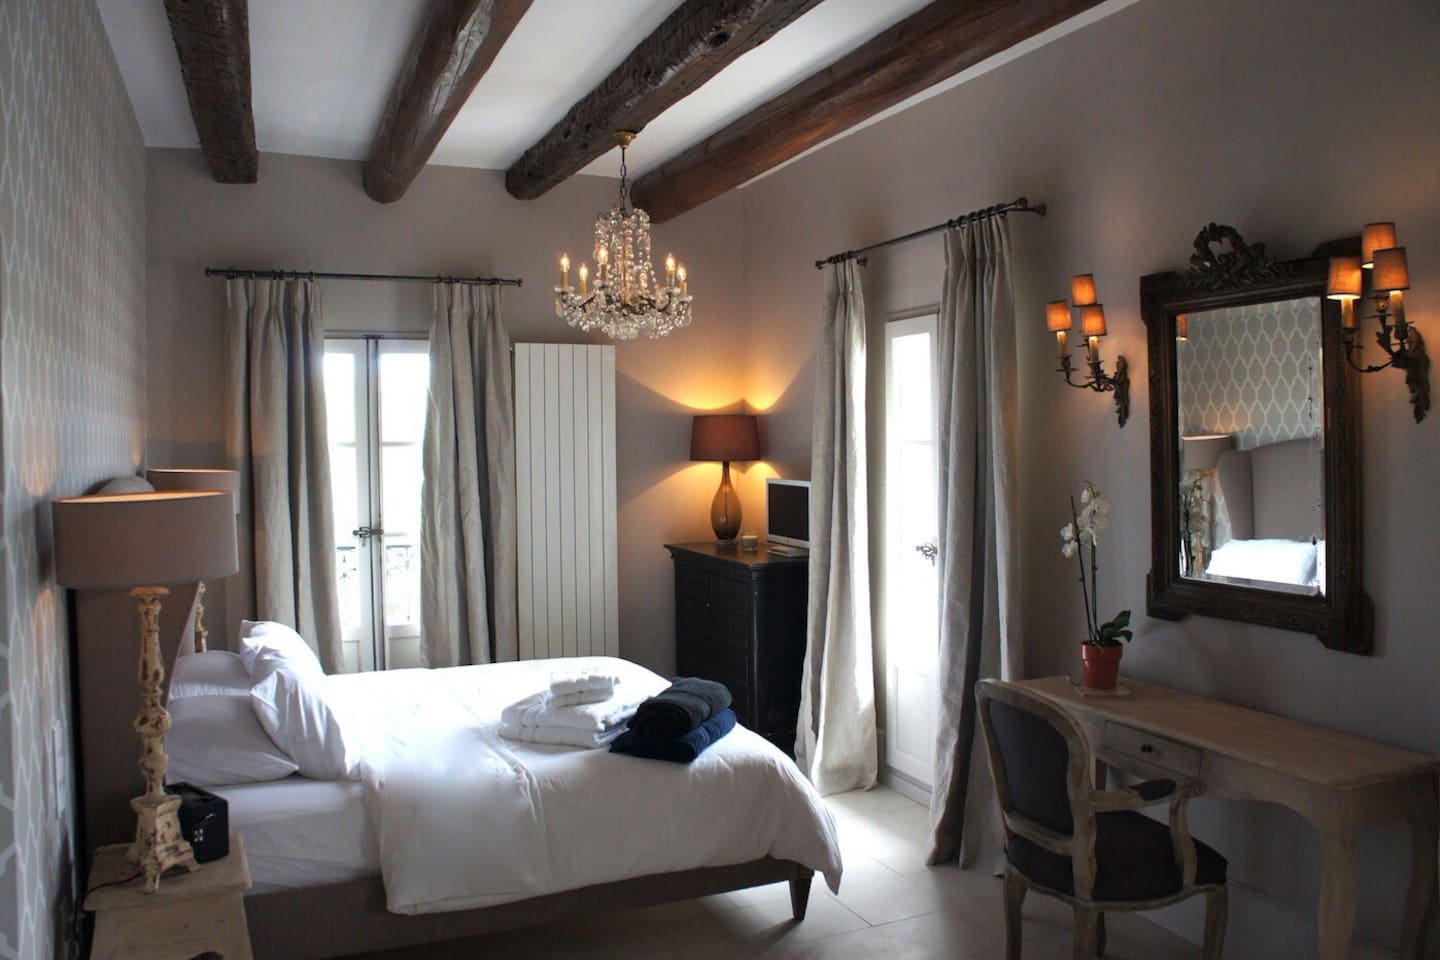 The Louis room overlooks the castle gardens and has views of the lagoon